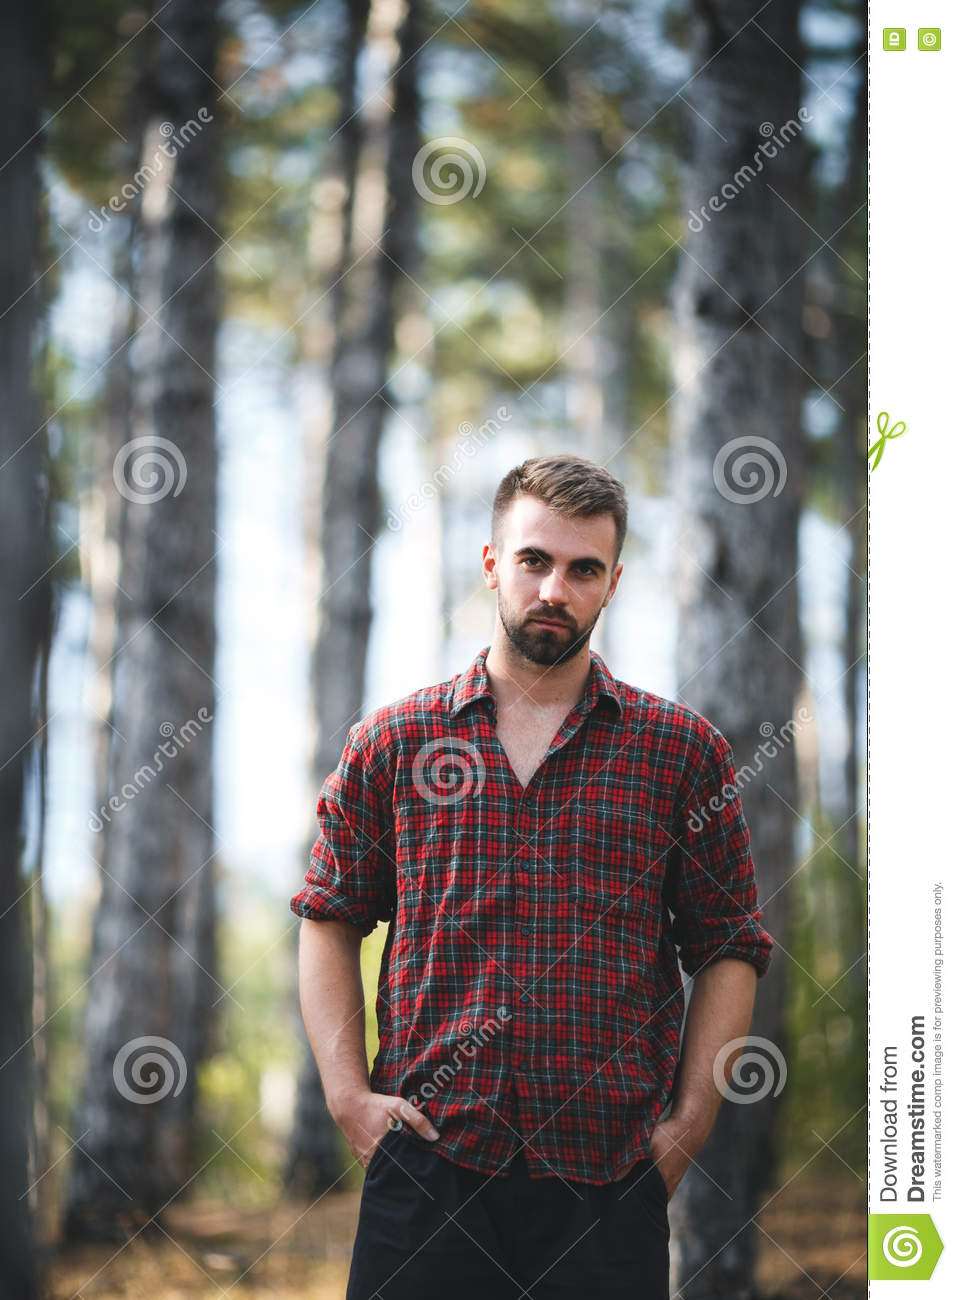 Handsome Fit Man Posing In Forest Wearing Checked Shirt